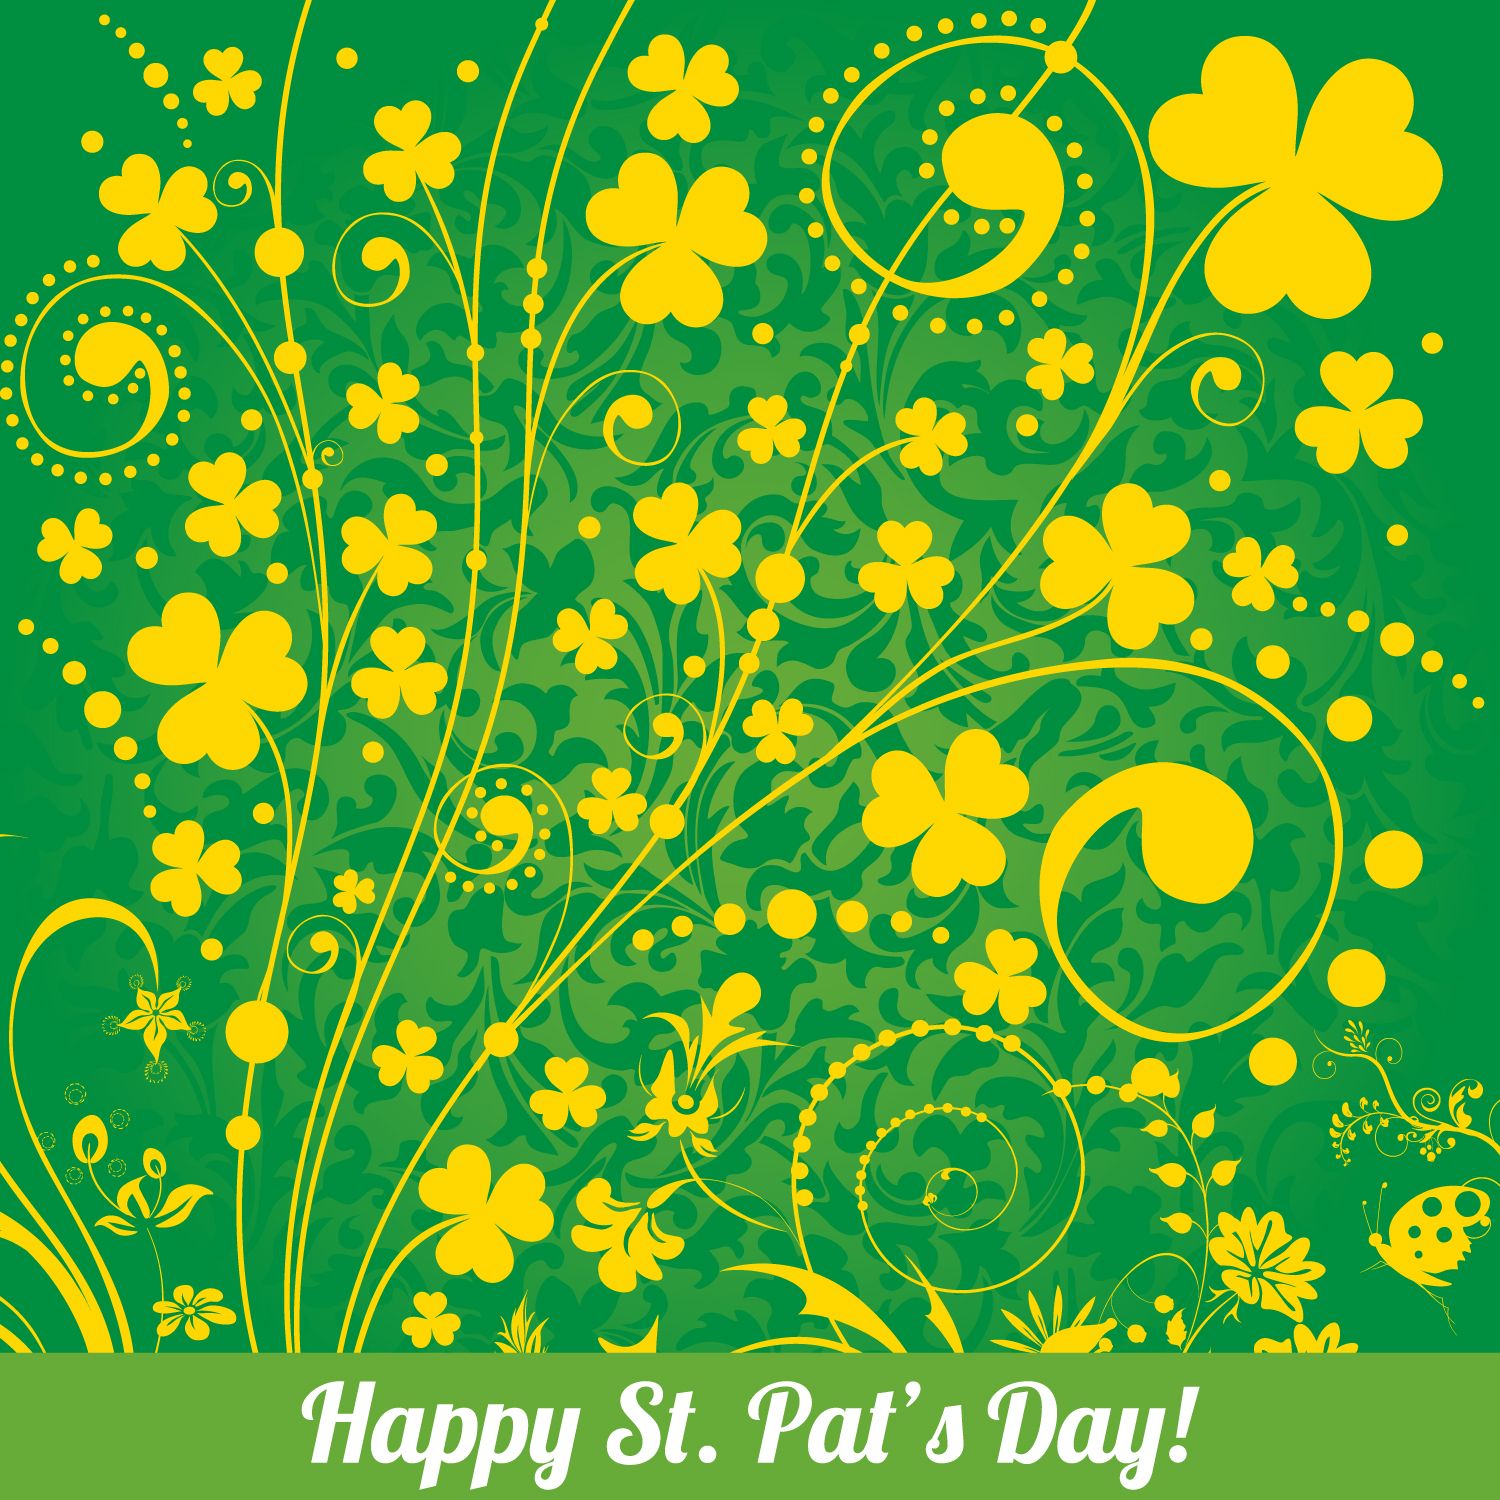 St. Patrick's Day Vector Background